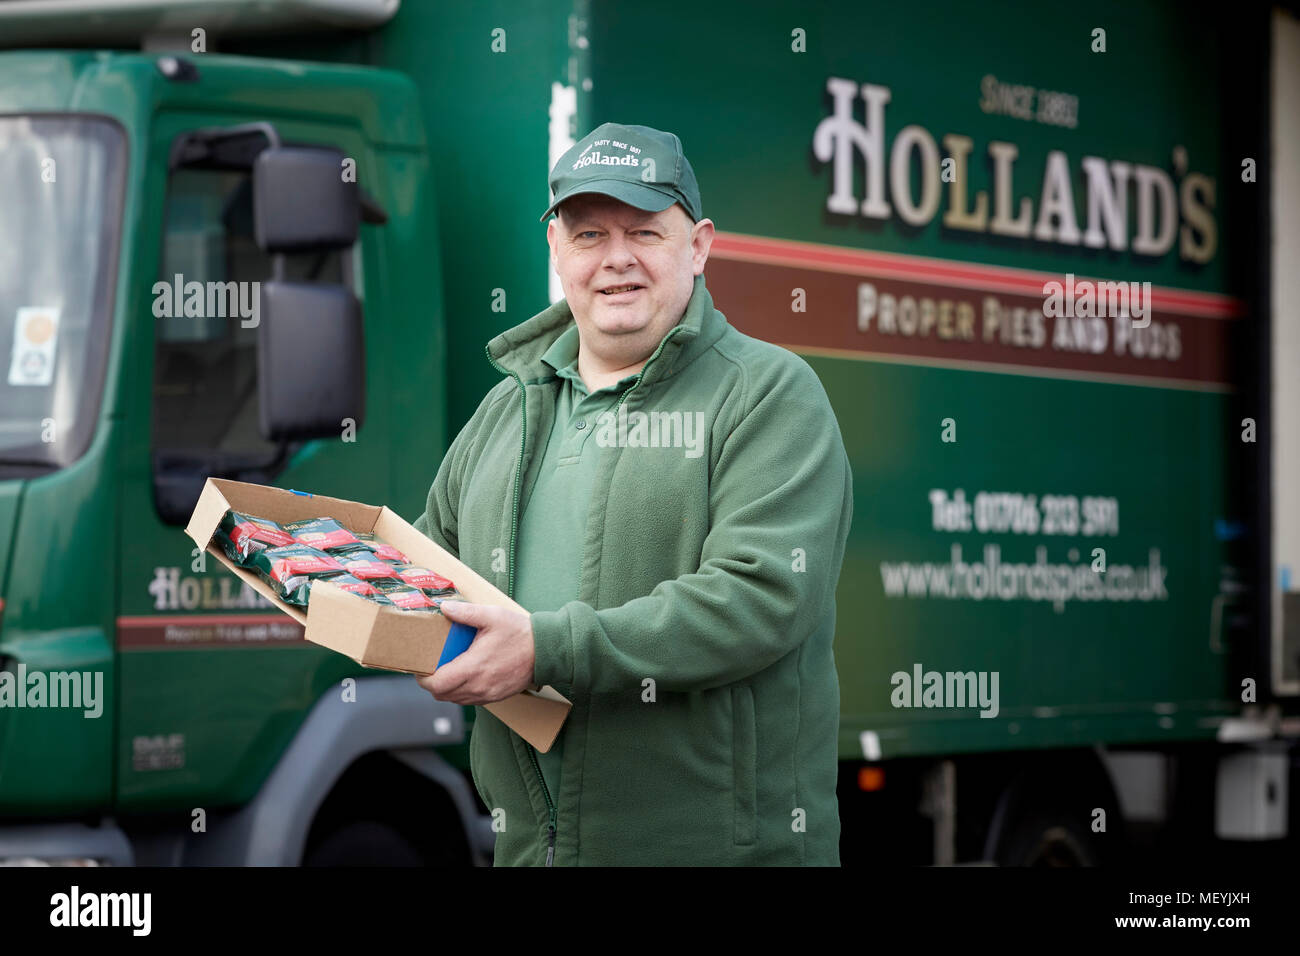 Hollands pies celebrate National Pie Week by dropping of donations of pies to charities nominated by the public.  Pictured pies being loaded onto the  - Stock Image